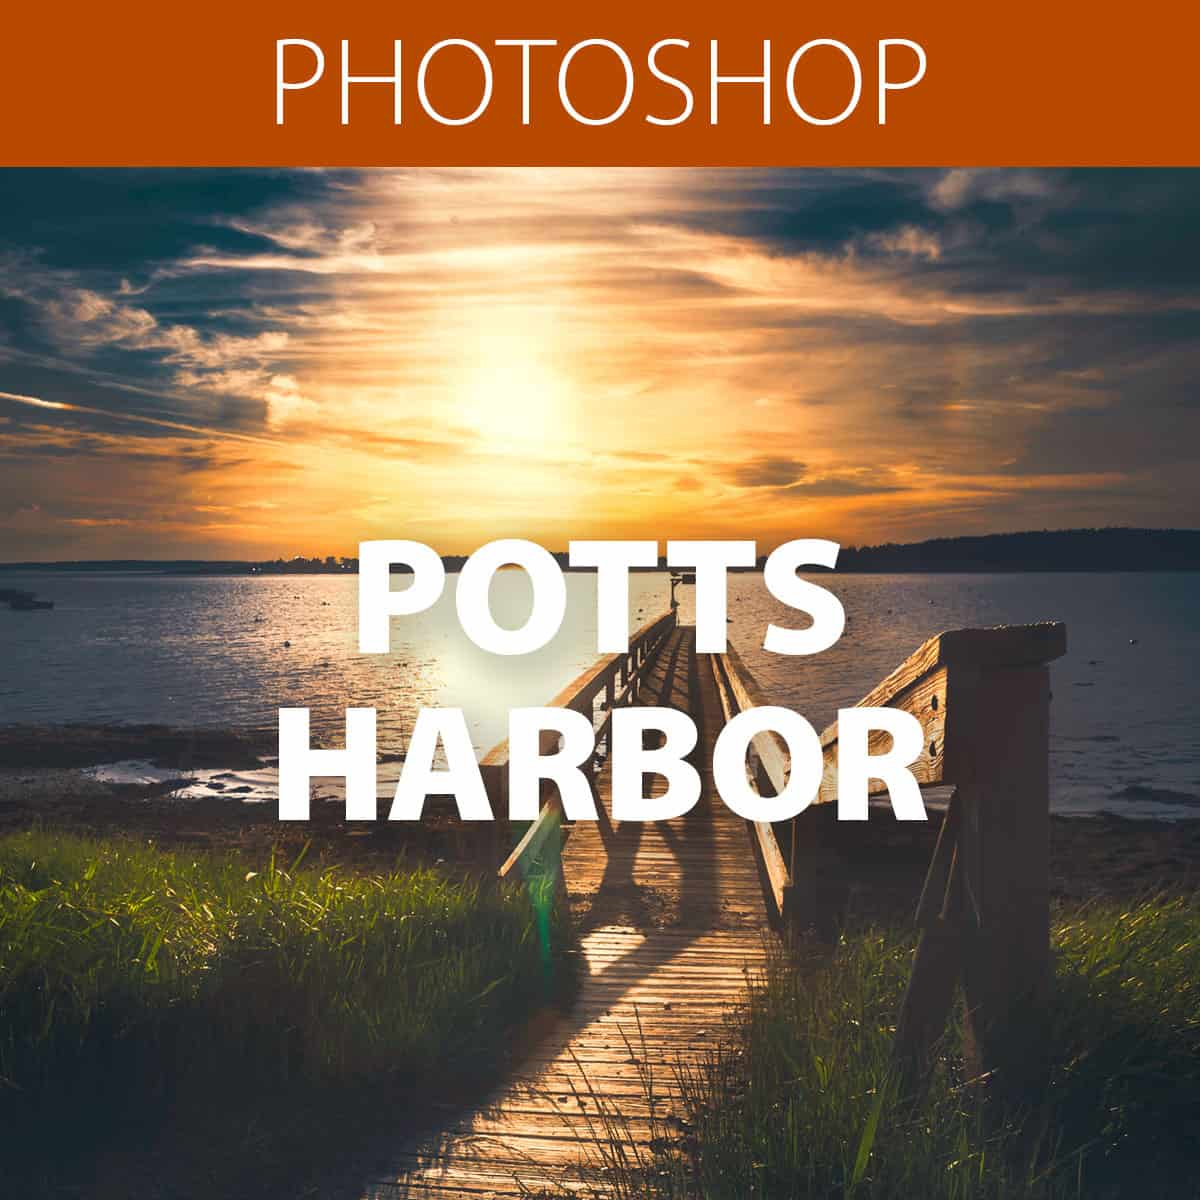 Workflow: Potts Harbor